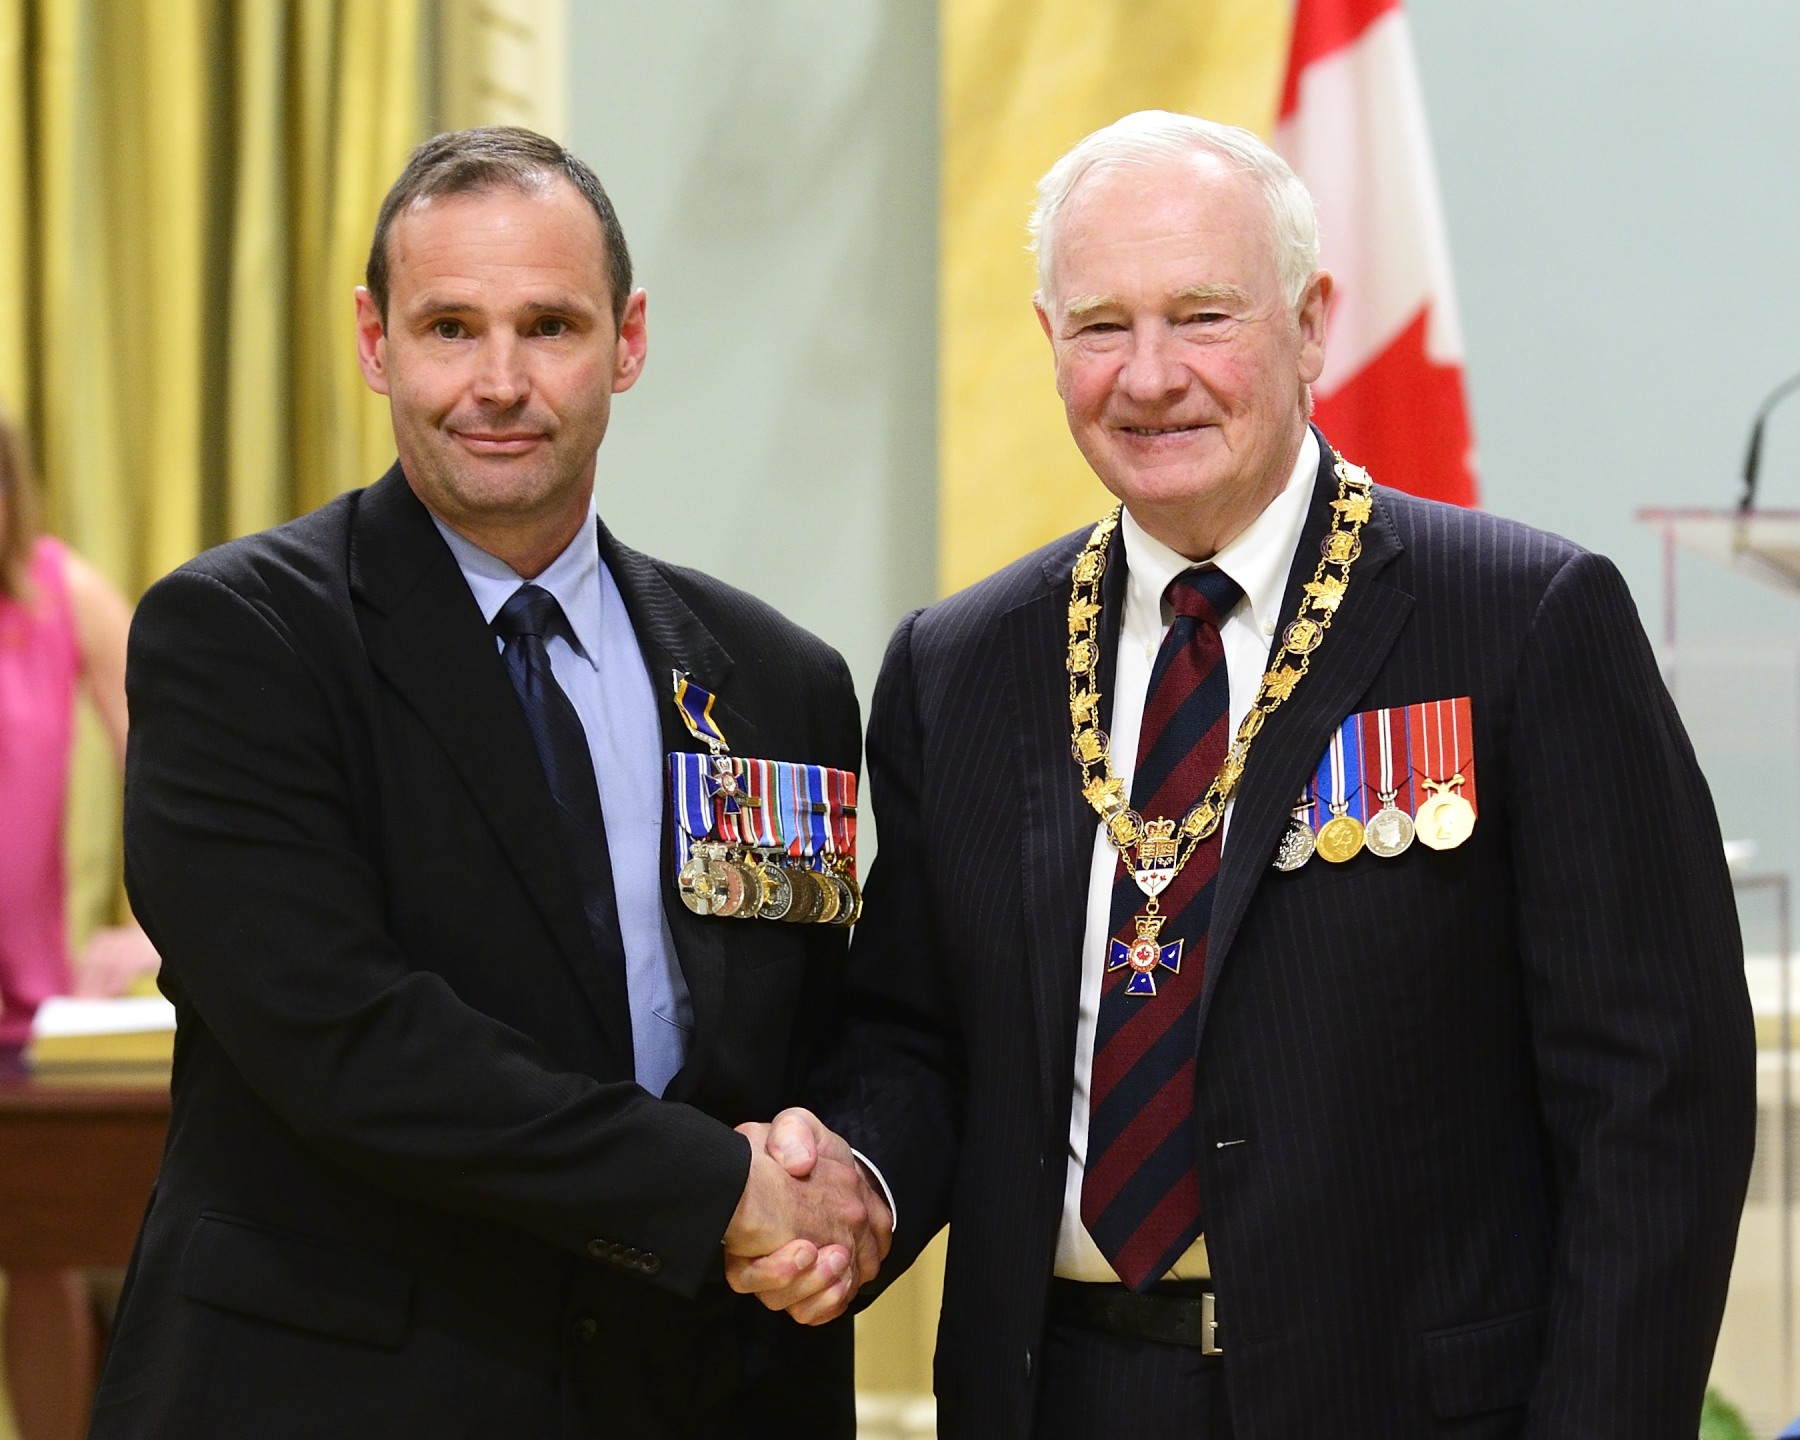 His Excellency presented the Order of Military Merit at the Member level (M.M.M.) to Master Warrant Officer Raymond Brodeur, M.M.M., M.S.M., C.D., 1st Battalion, Princess Patricia's Canadian Light Infantry, Edmonton, Alberta.